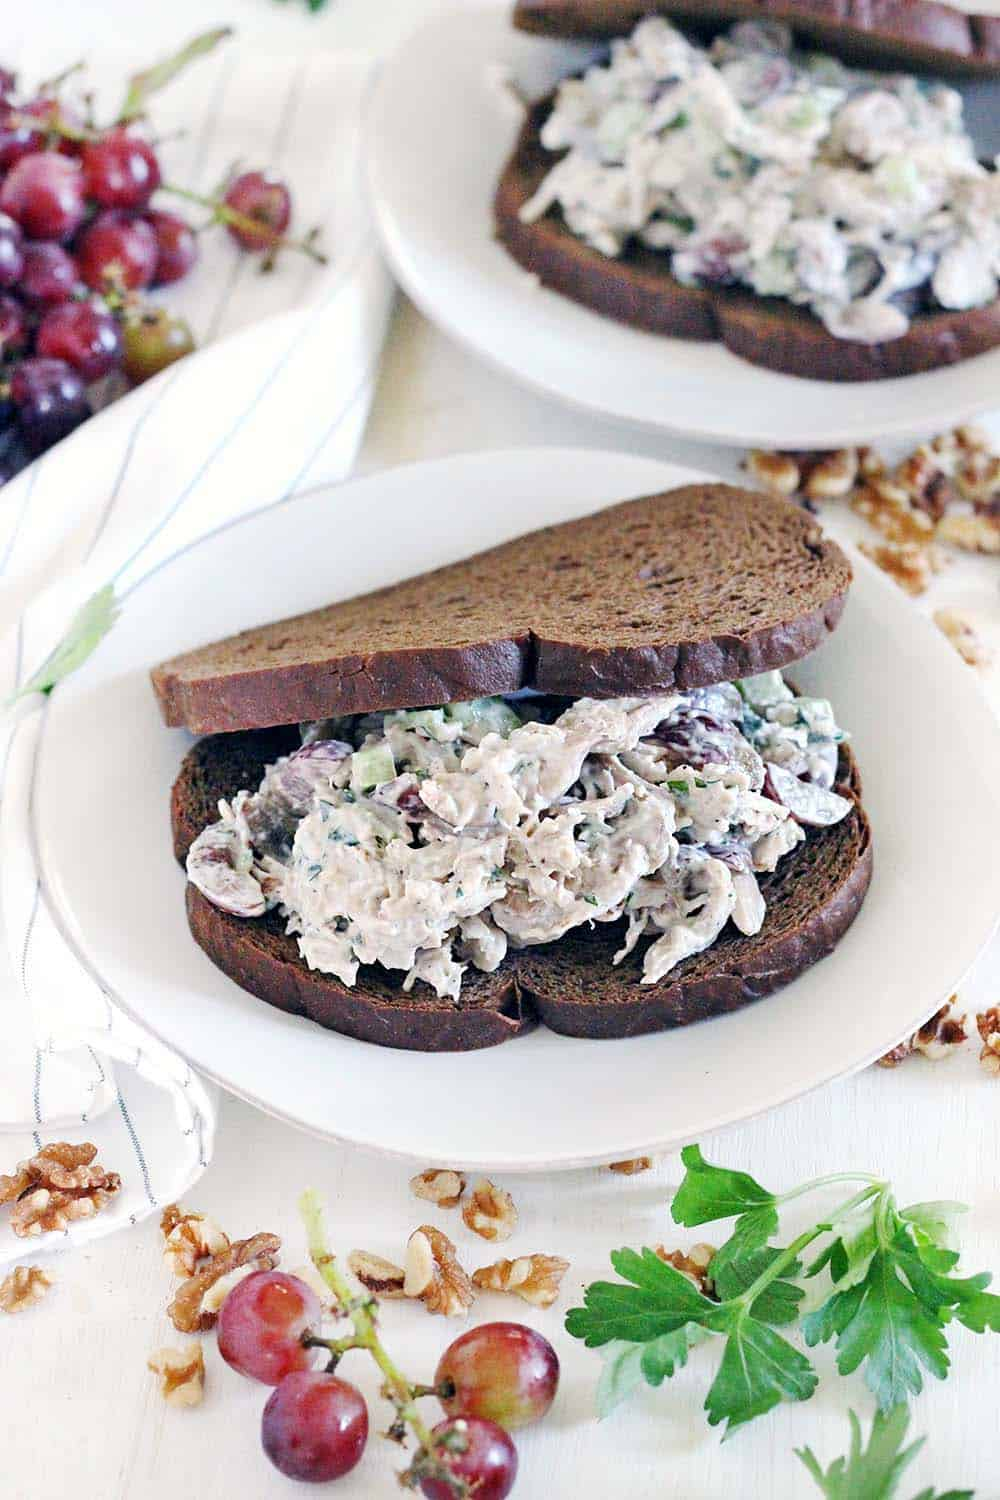 Awesome-Chicken-Salad-with-Grapes-and-Walnuts-1